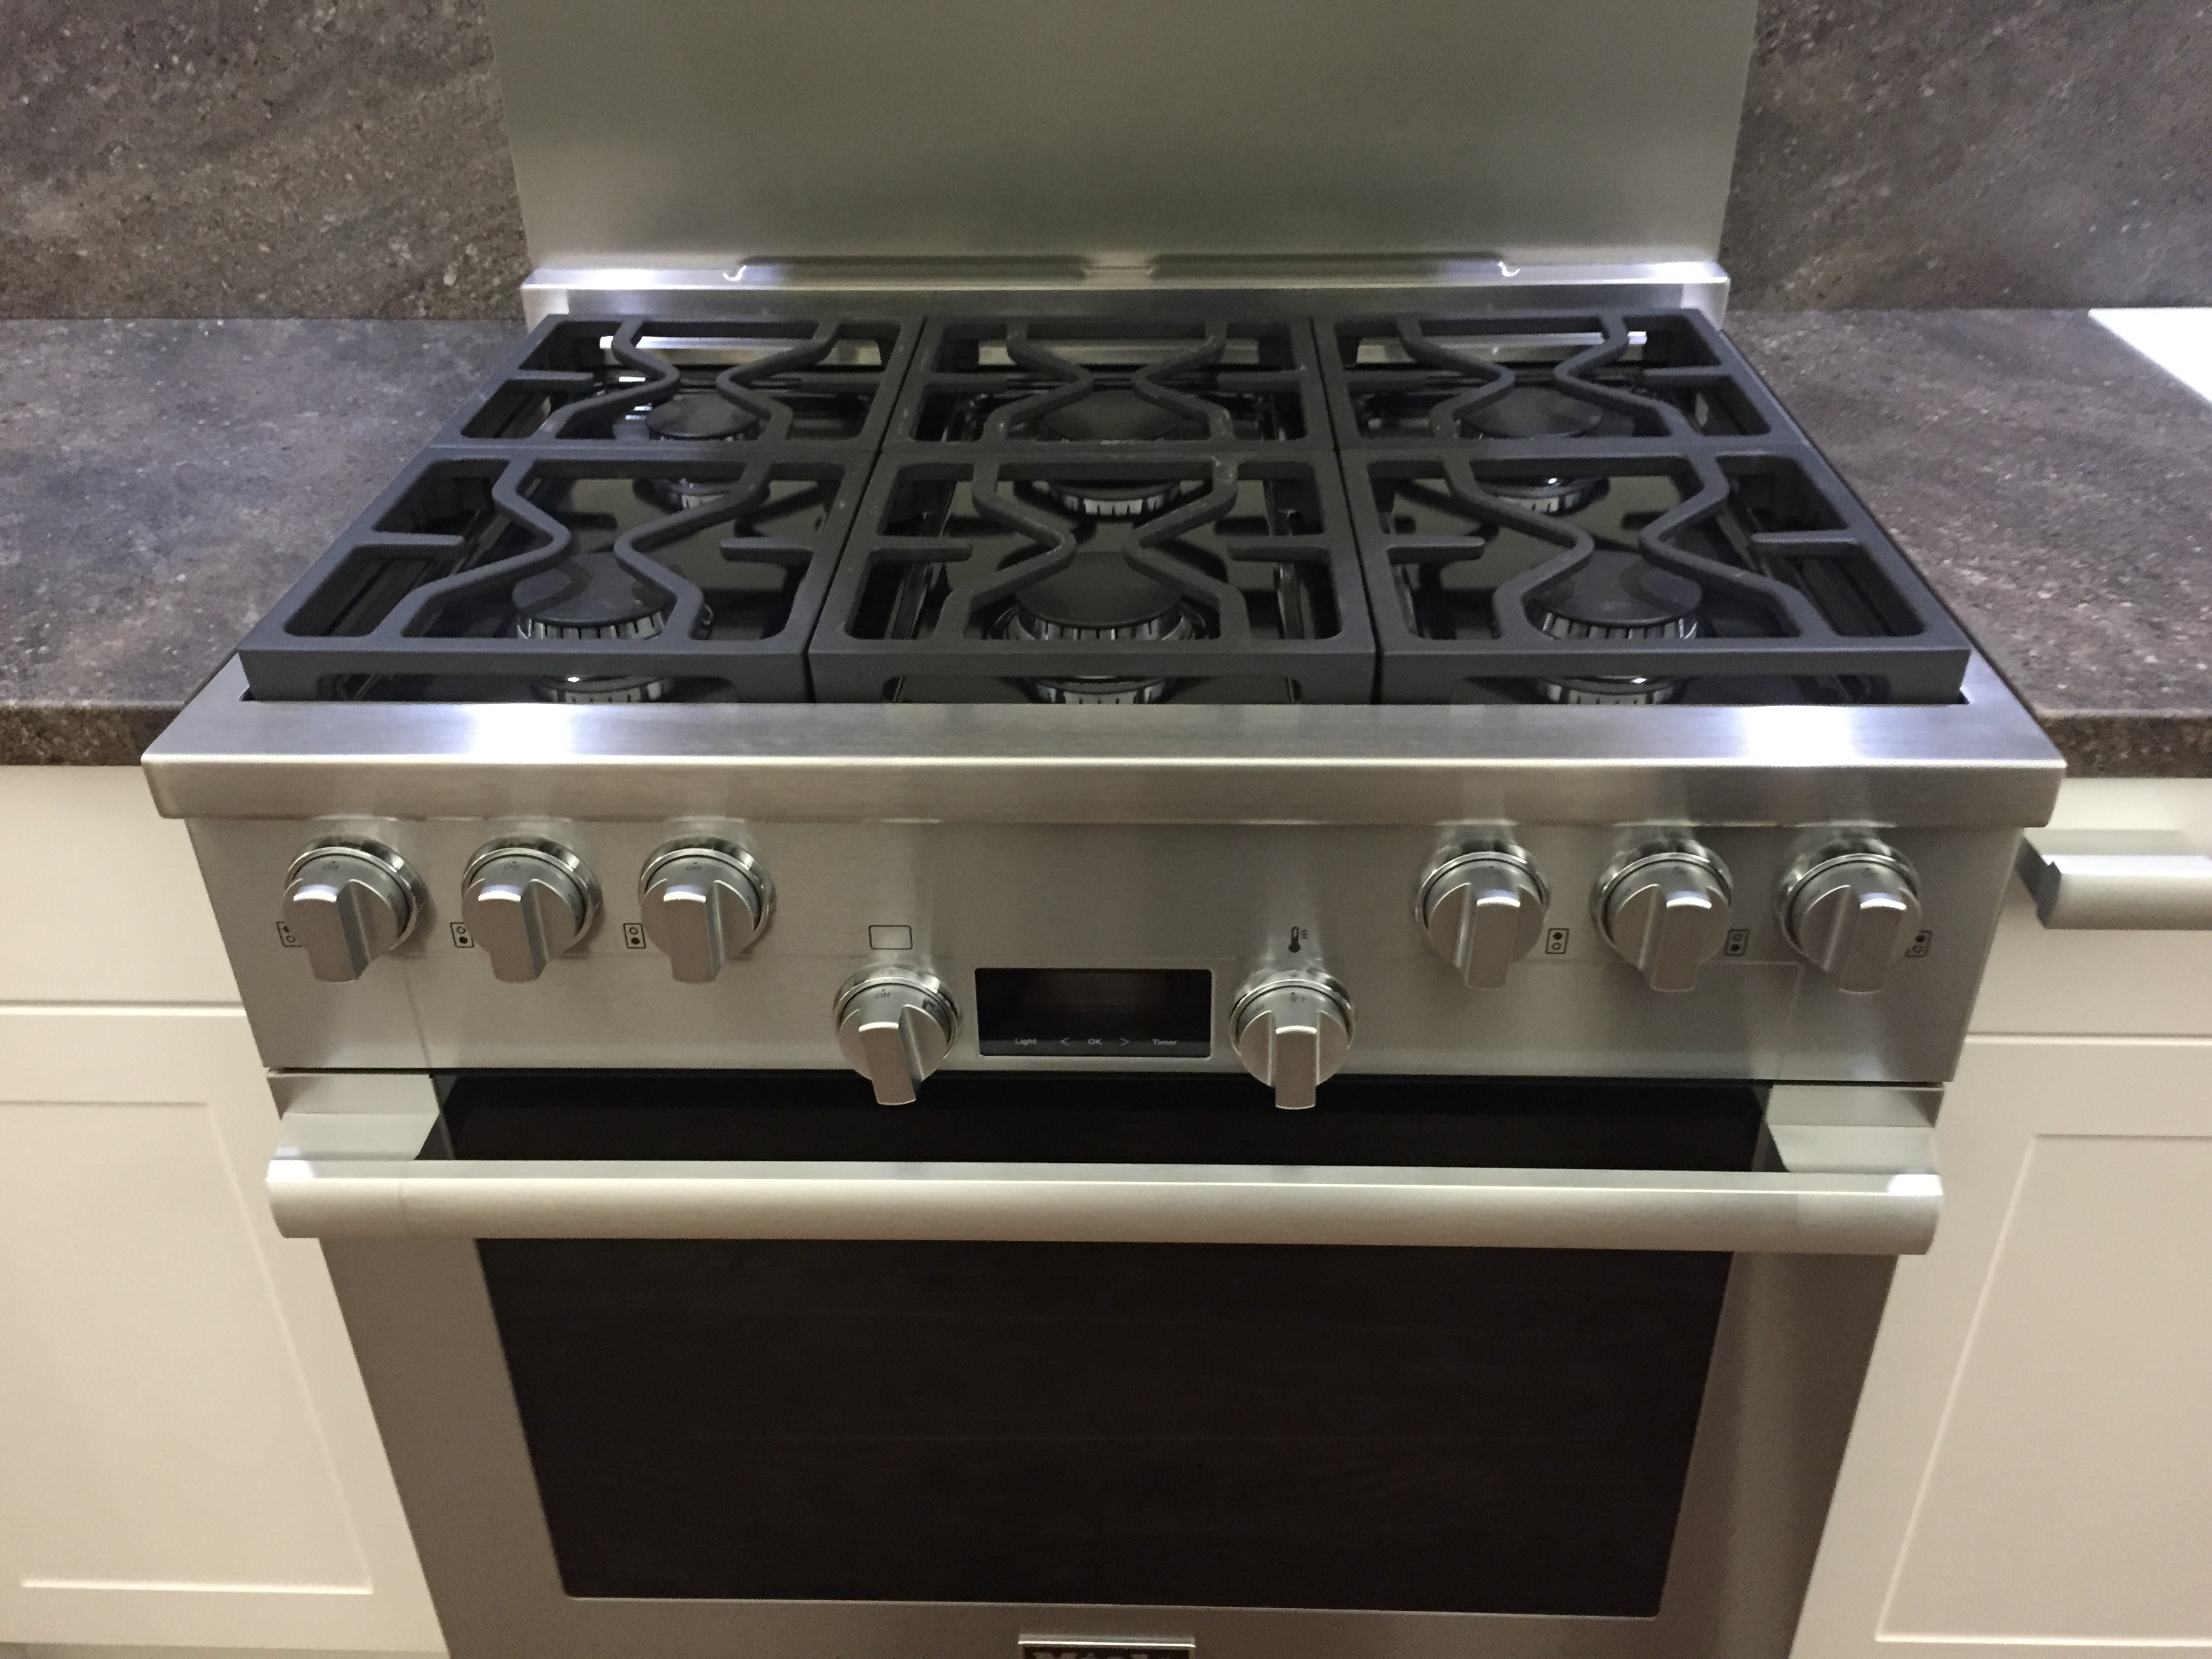 Double Oven Gas Range 30 Inch The New Miele Ranges Are Here! - Kieffer's ...